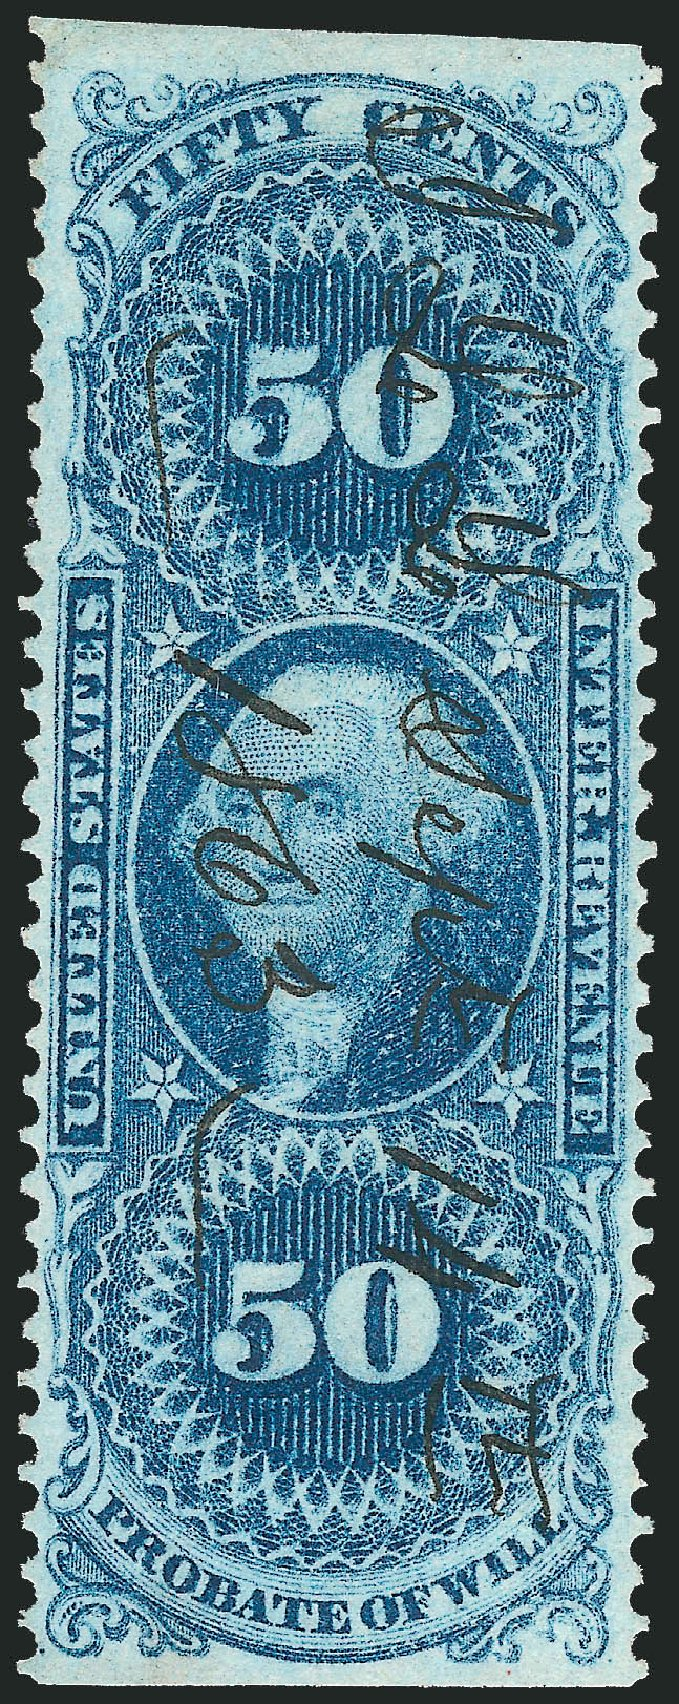 Price of US Stamp Scott Catalog #R62 - 50c 1862 Revenue Probate of Will. Robert Siegel Auction Galleries, Nov 2011, Sale 1015, Lot 61